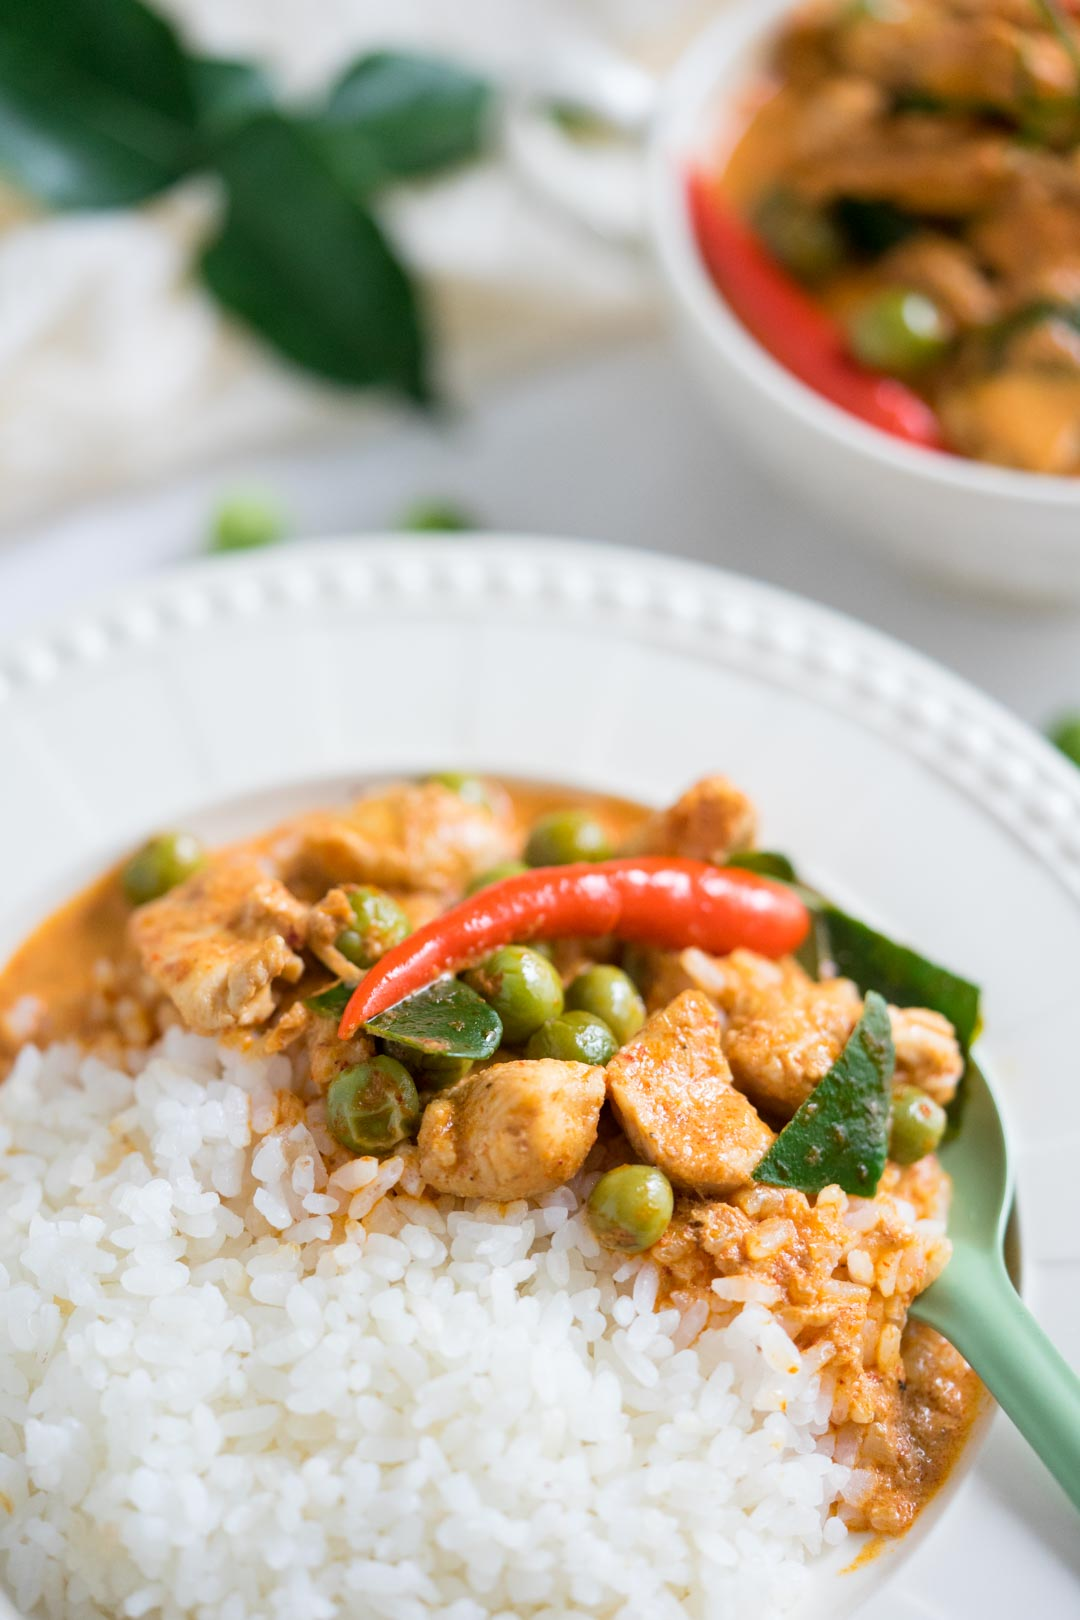 rice topped with panang chicken or panang gai in a white plate